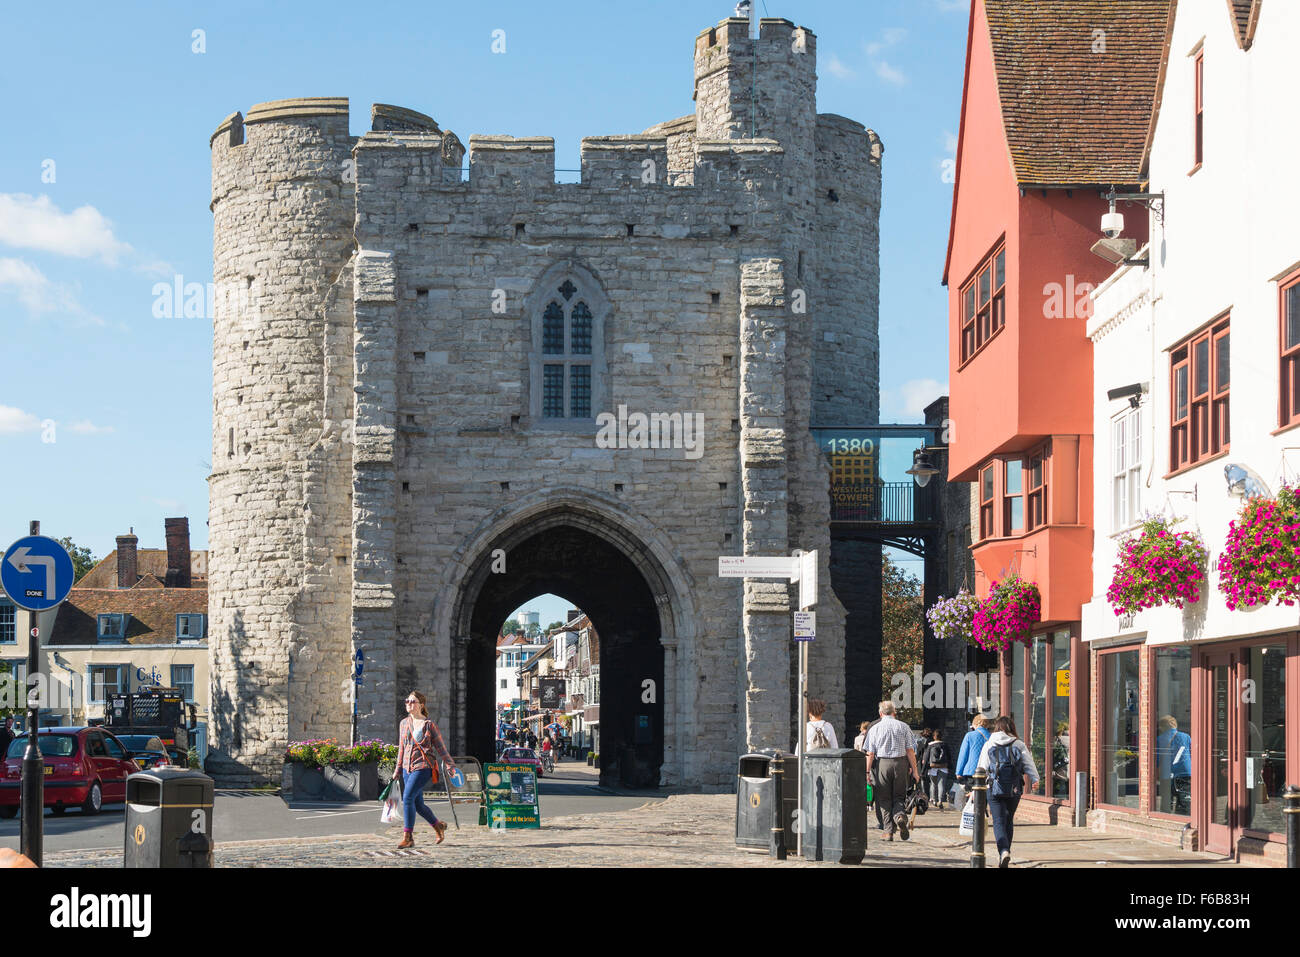 Westgate Towers, St Peter's Place, Canterbury, Kent, England, United Kingdom - Stock Image